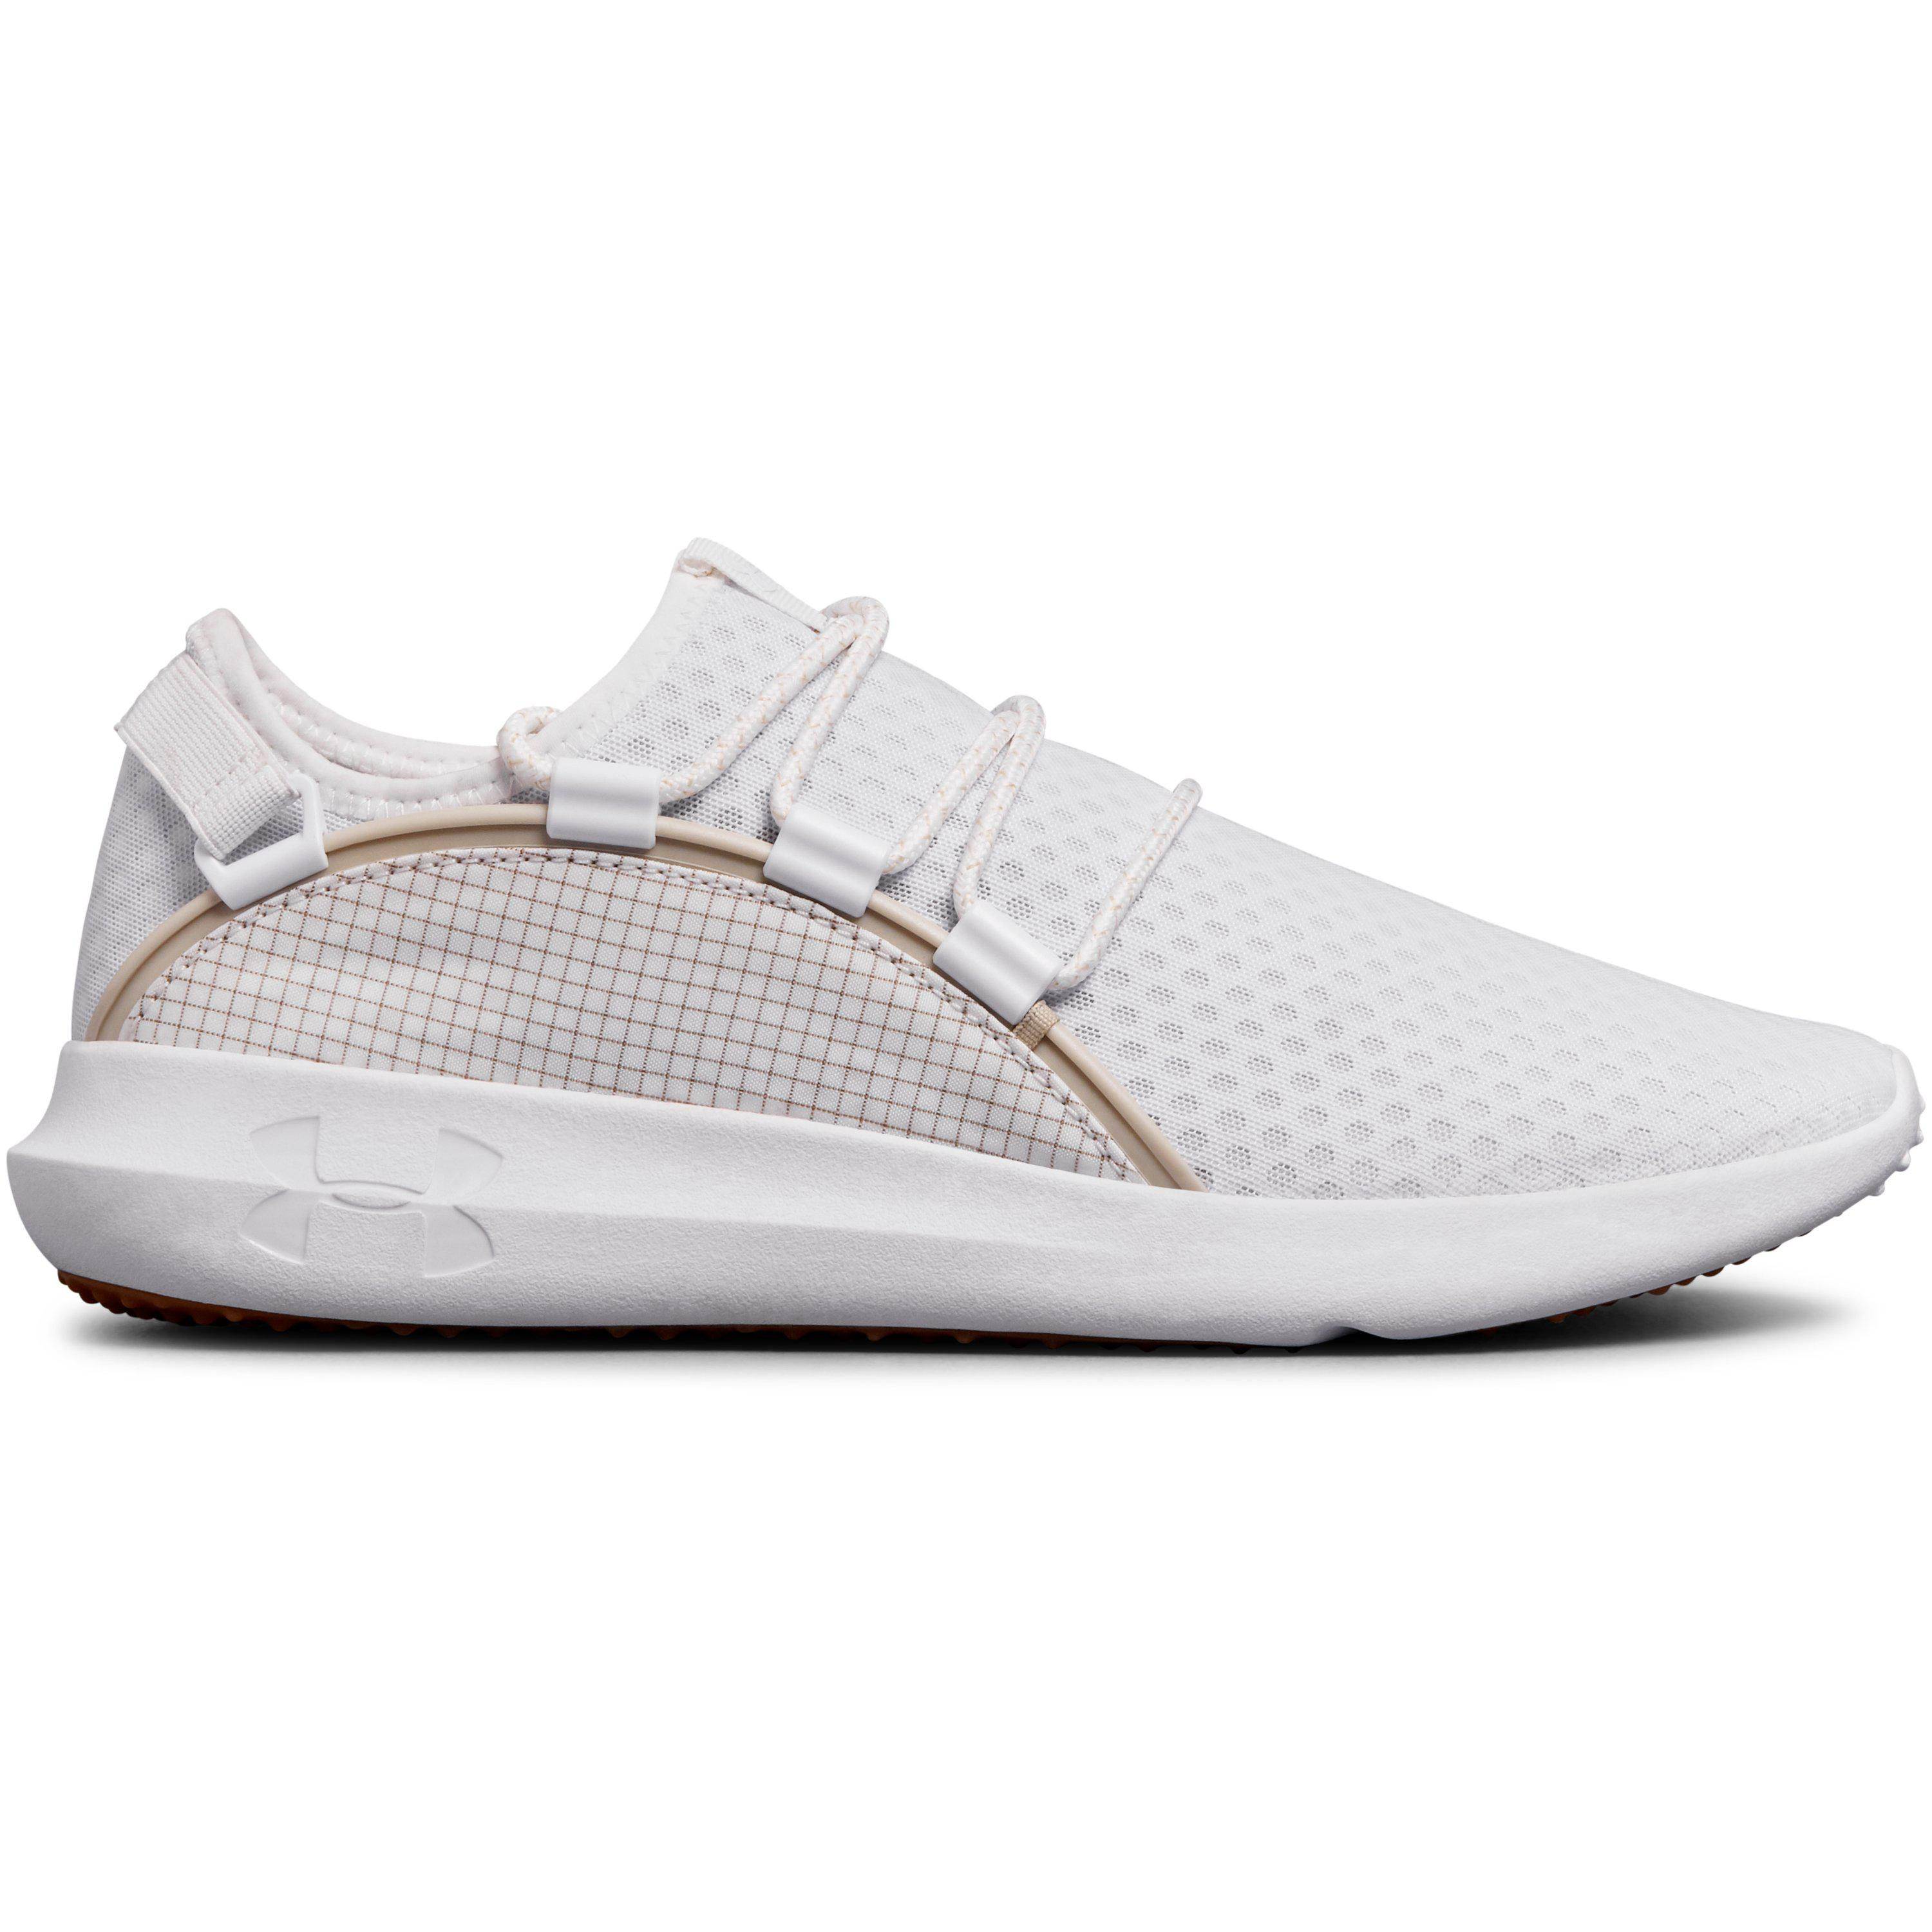 Ua Rail Fit Training Shoes in White